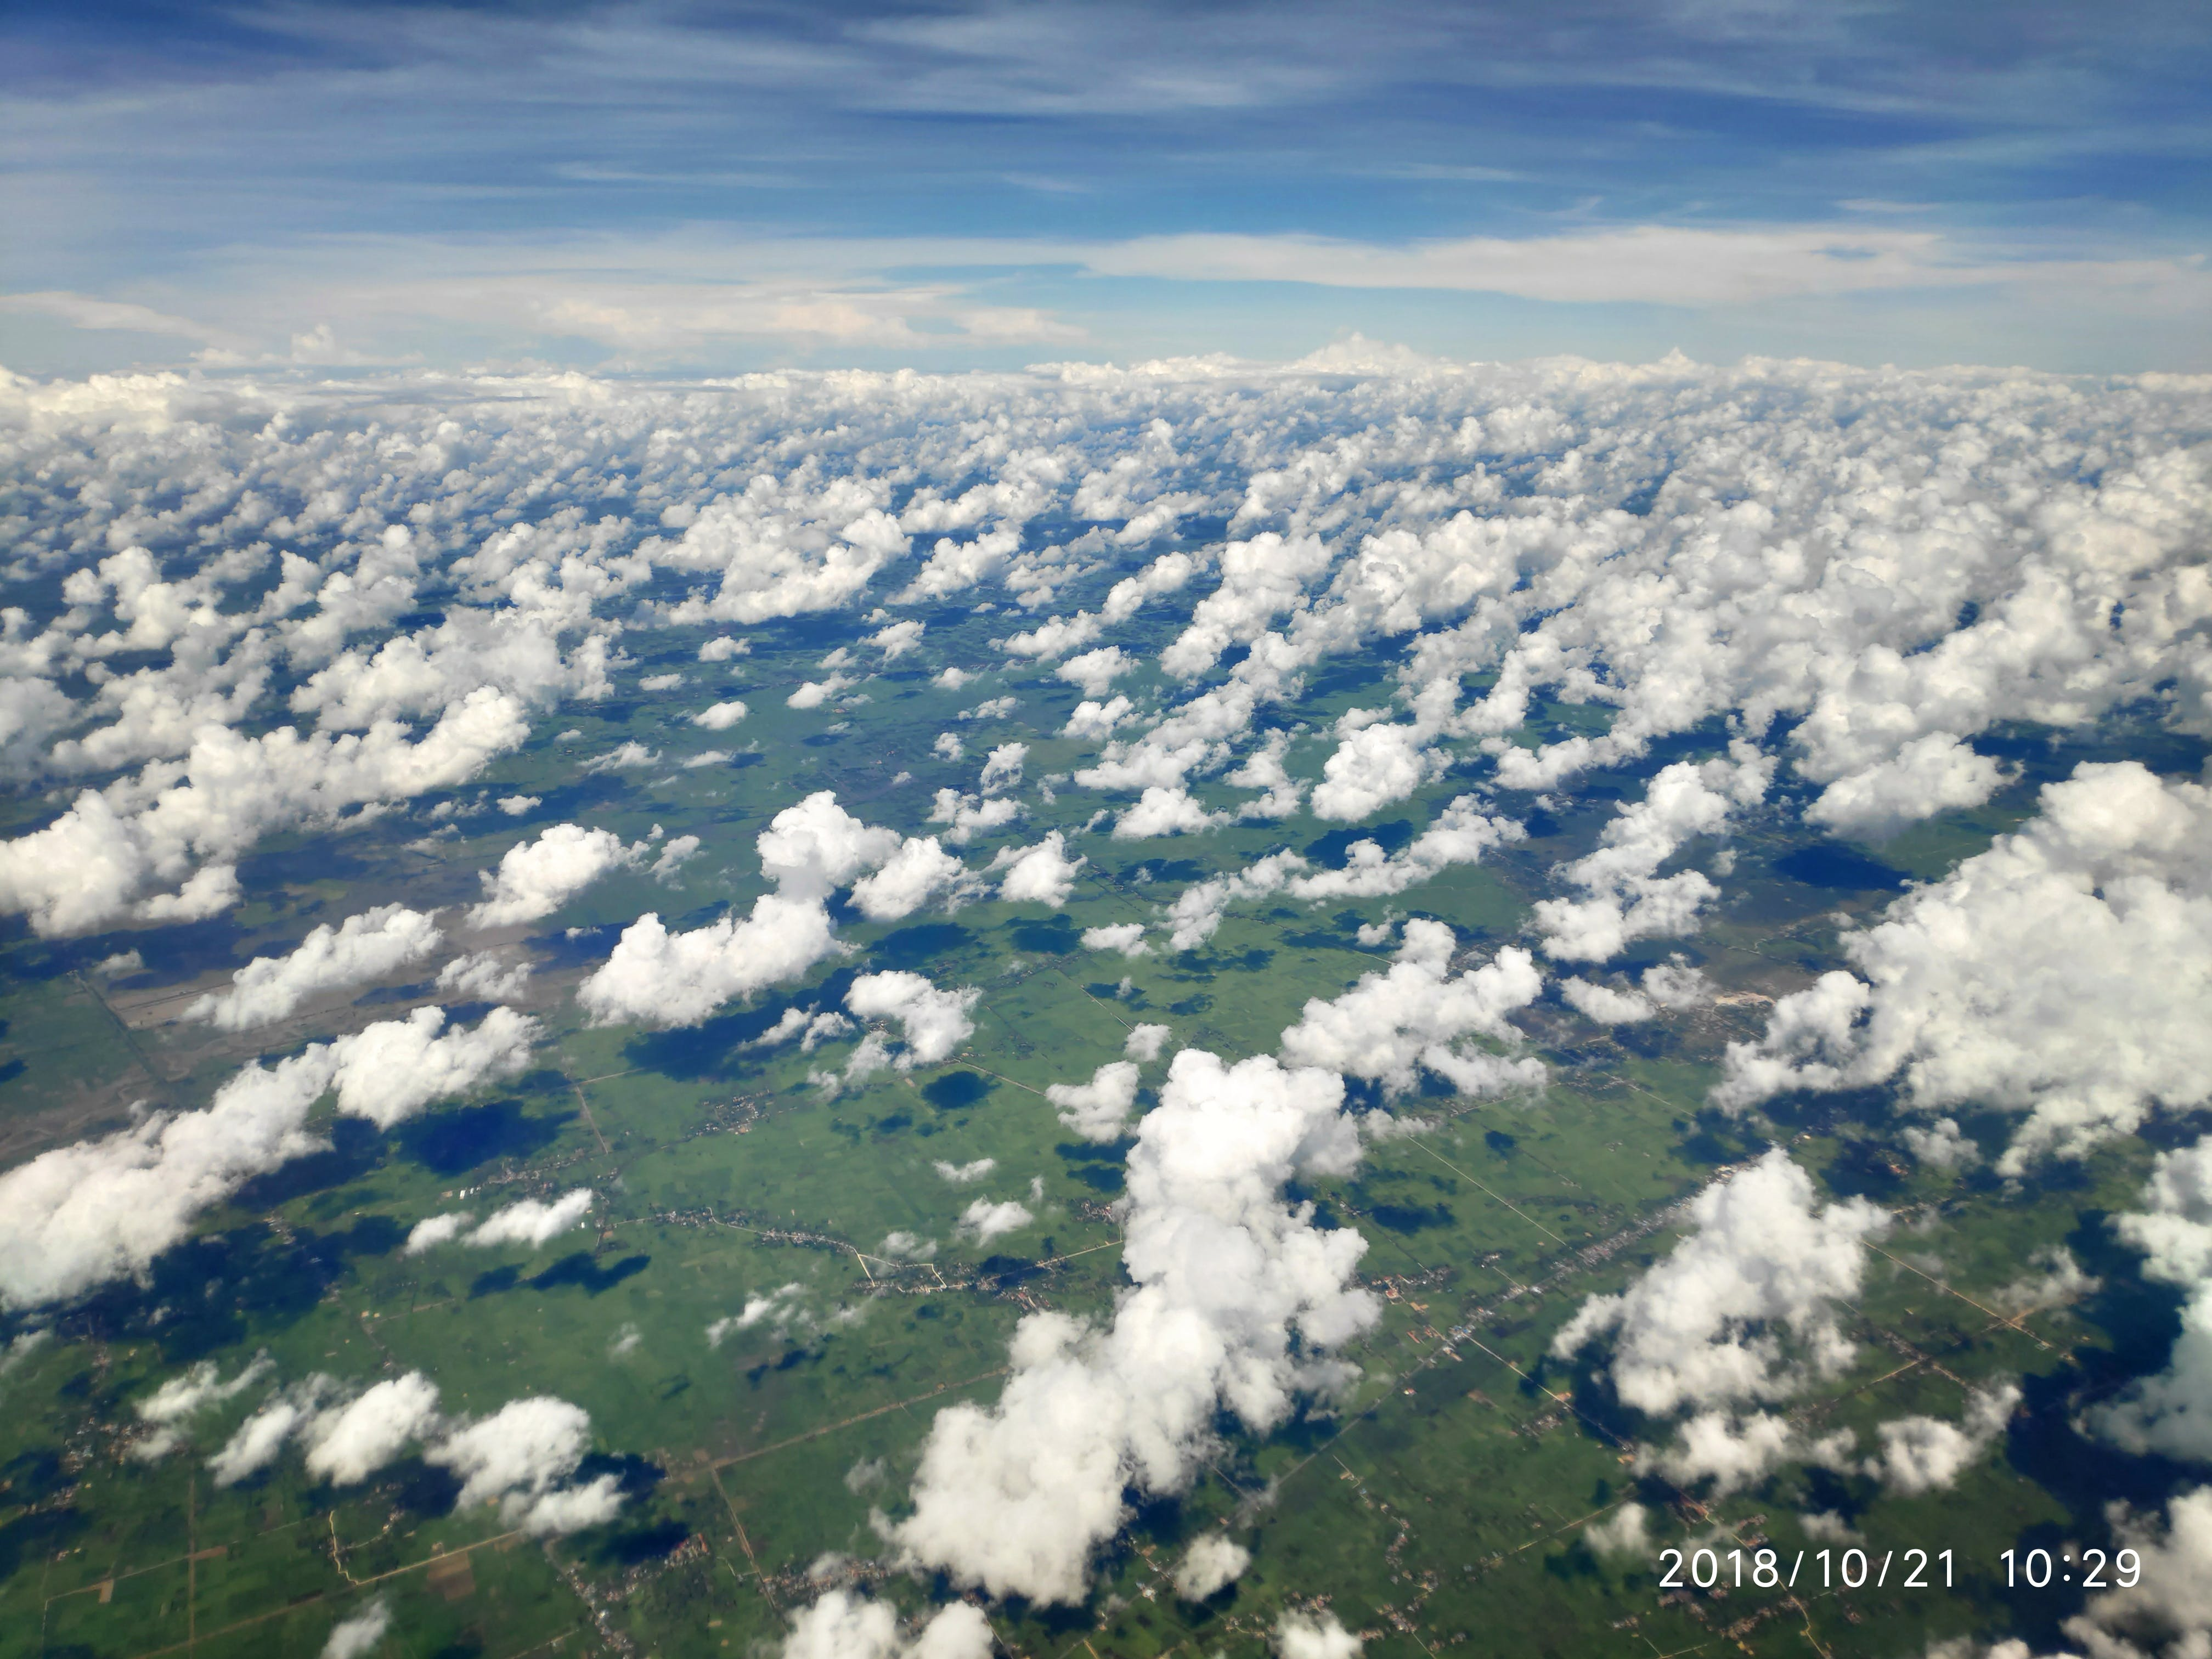 Free stock photo of Resting clouds